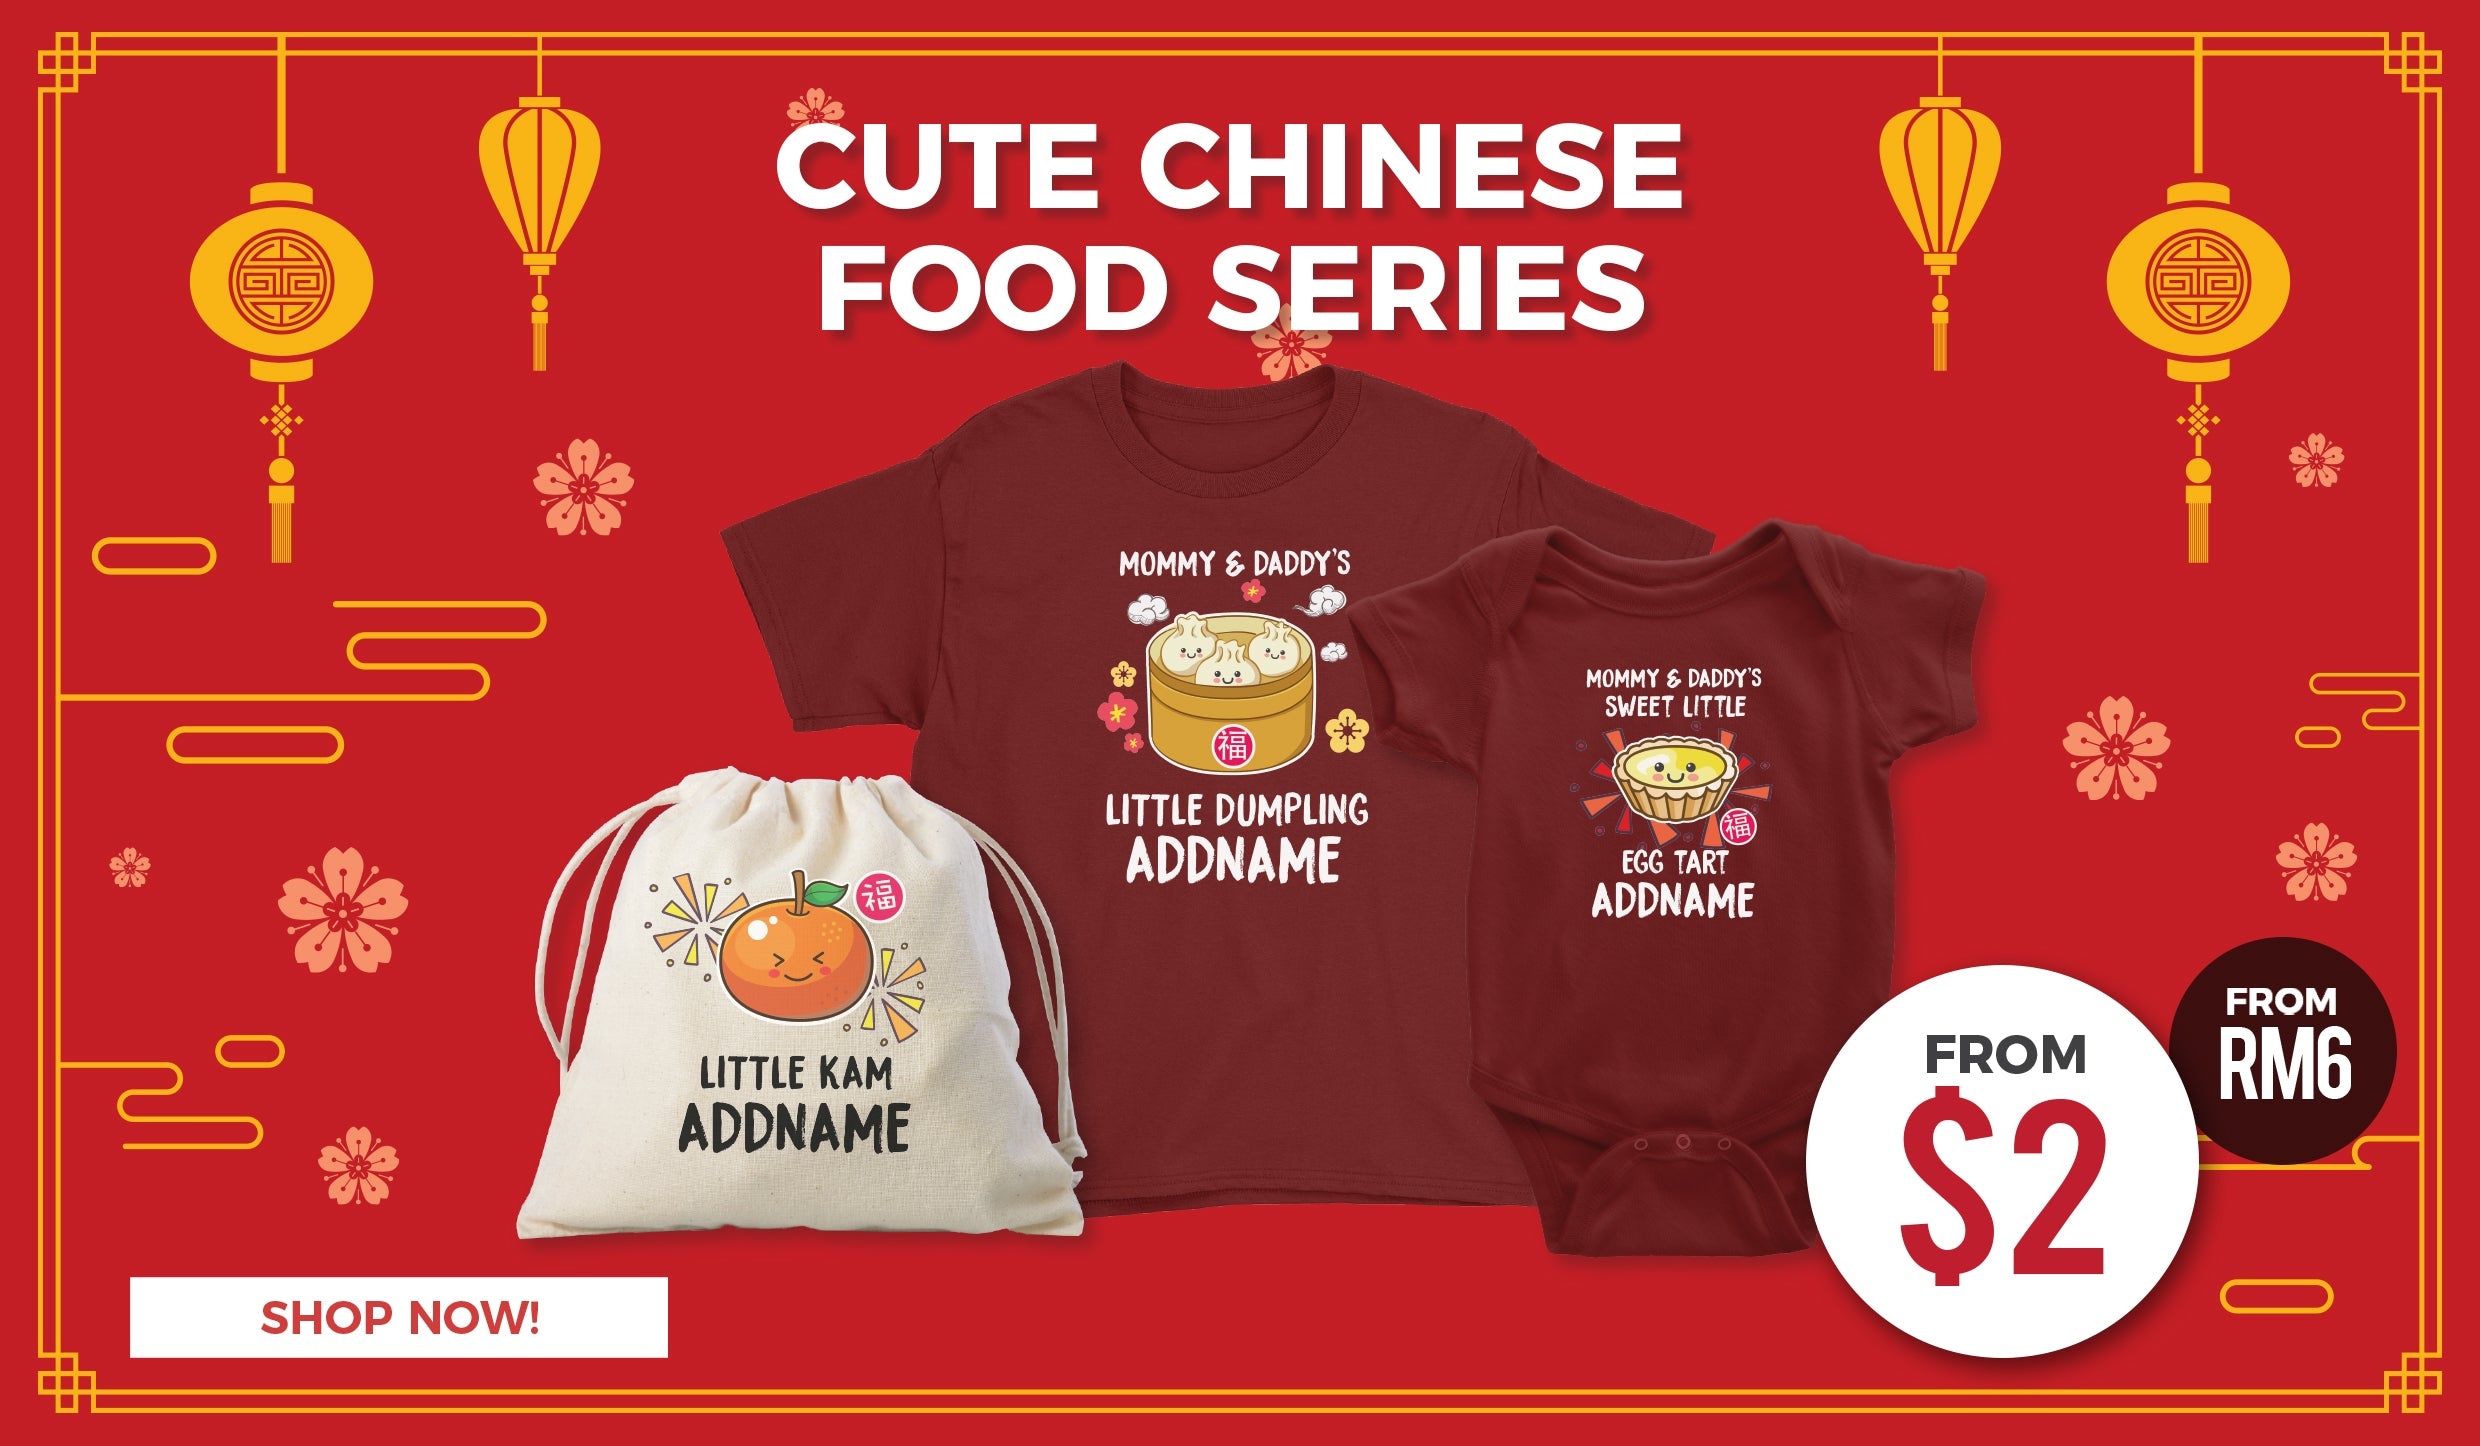 cny-banner-2020-zodiac-series-cute-chinese-food-series.jpg